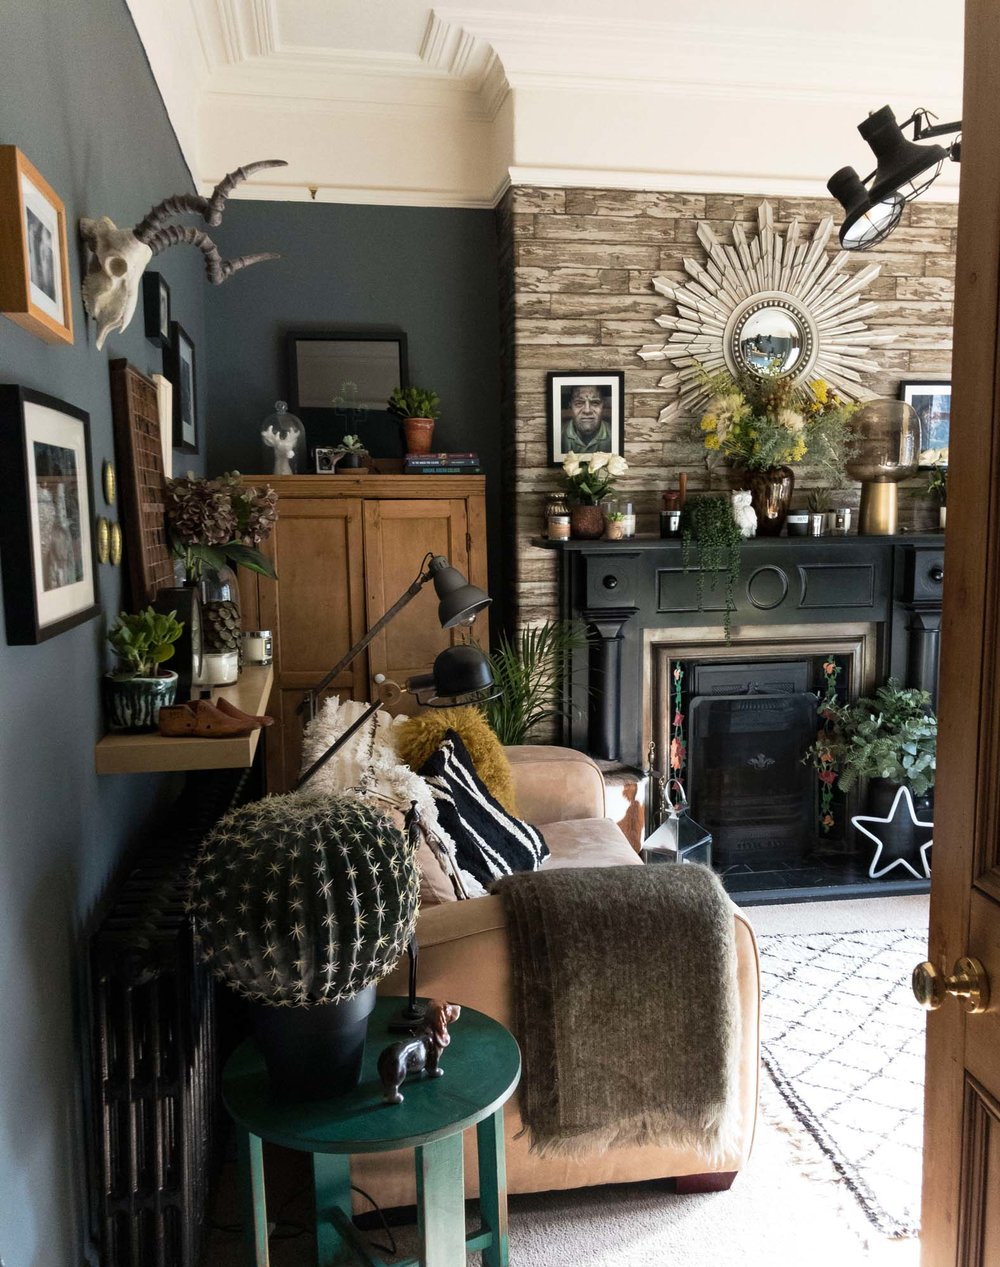 The Abigail Ahern-inspired sitting room the husband didn't plan, from the other side